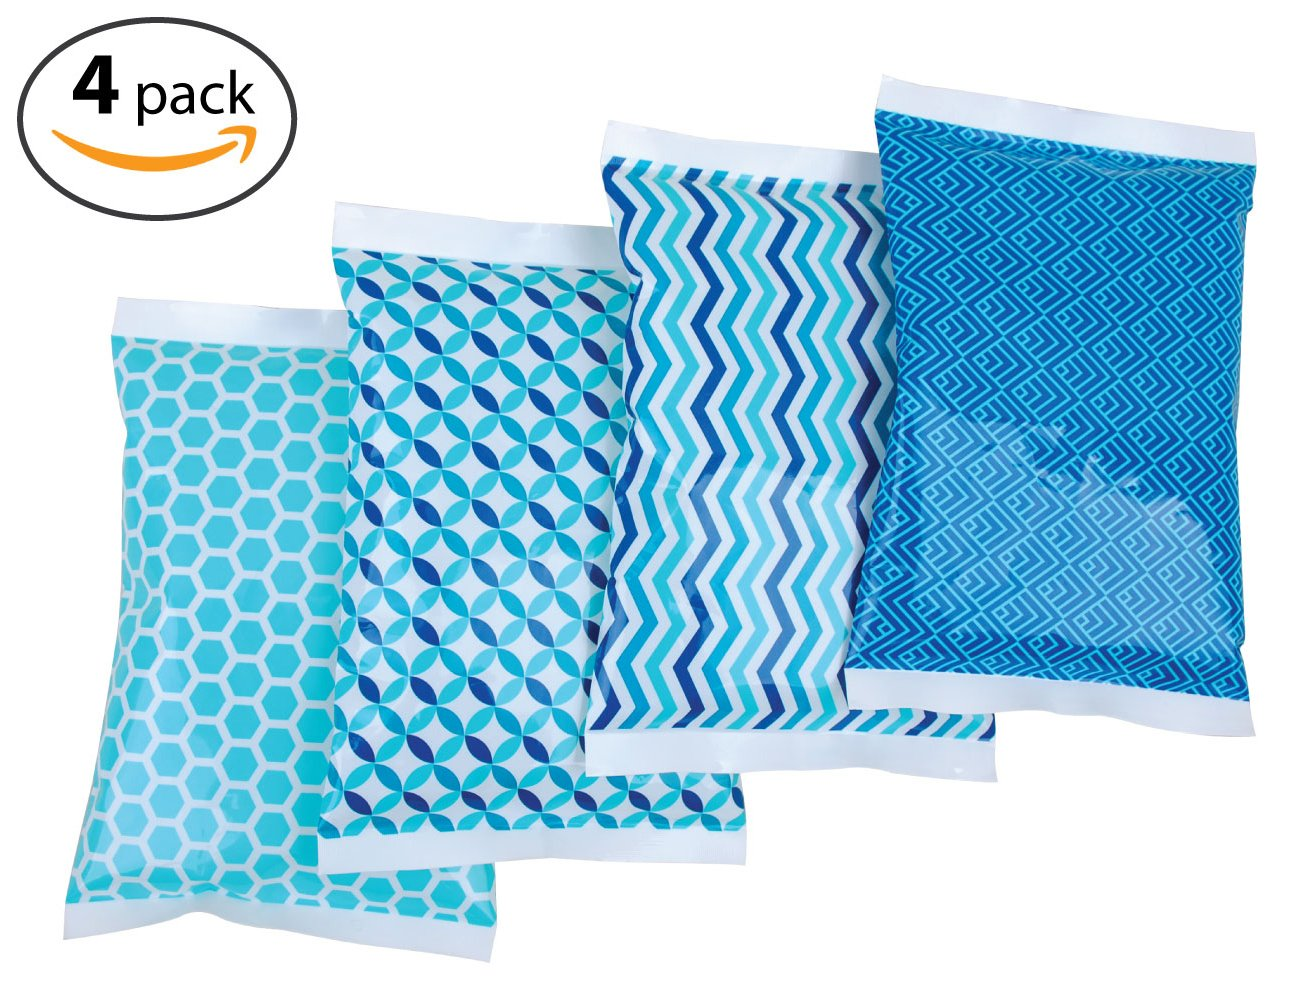 Ice Pack for Lunch Boxes - 4 Reusable Packs - Keeps Food Cold – Cool Print Bag Designs - Great for Kids or Adults Lunchbox and Cooler by Thrive (Image #9)